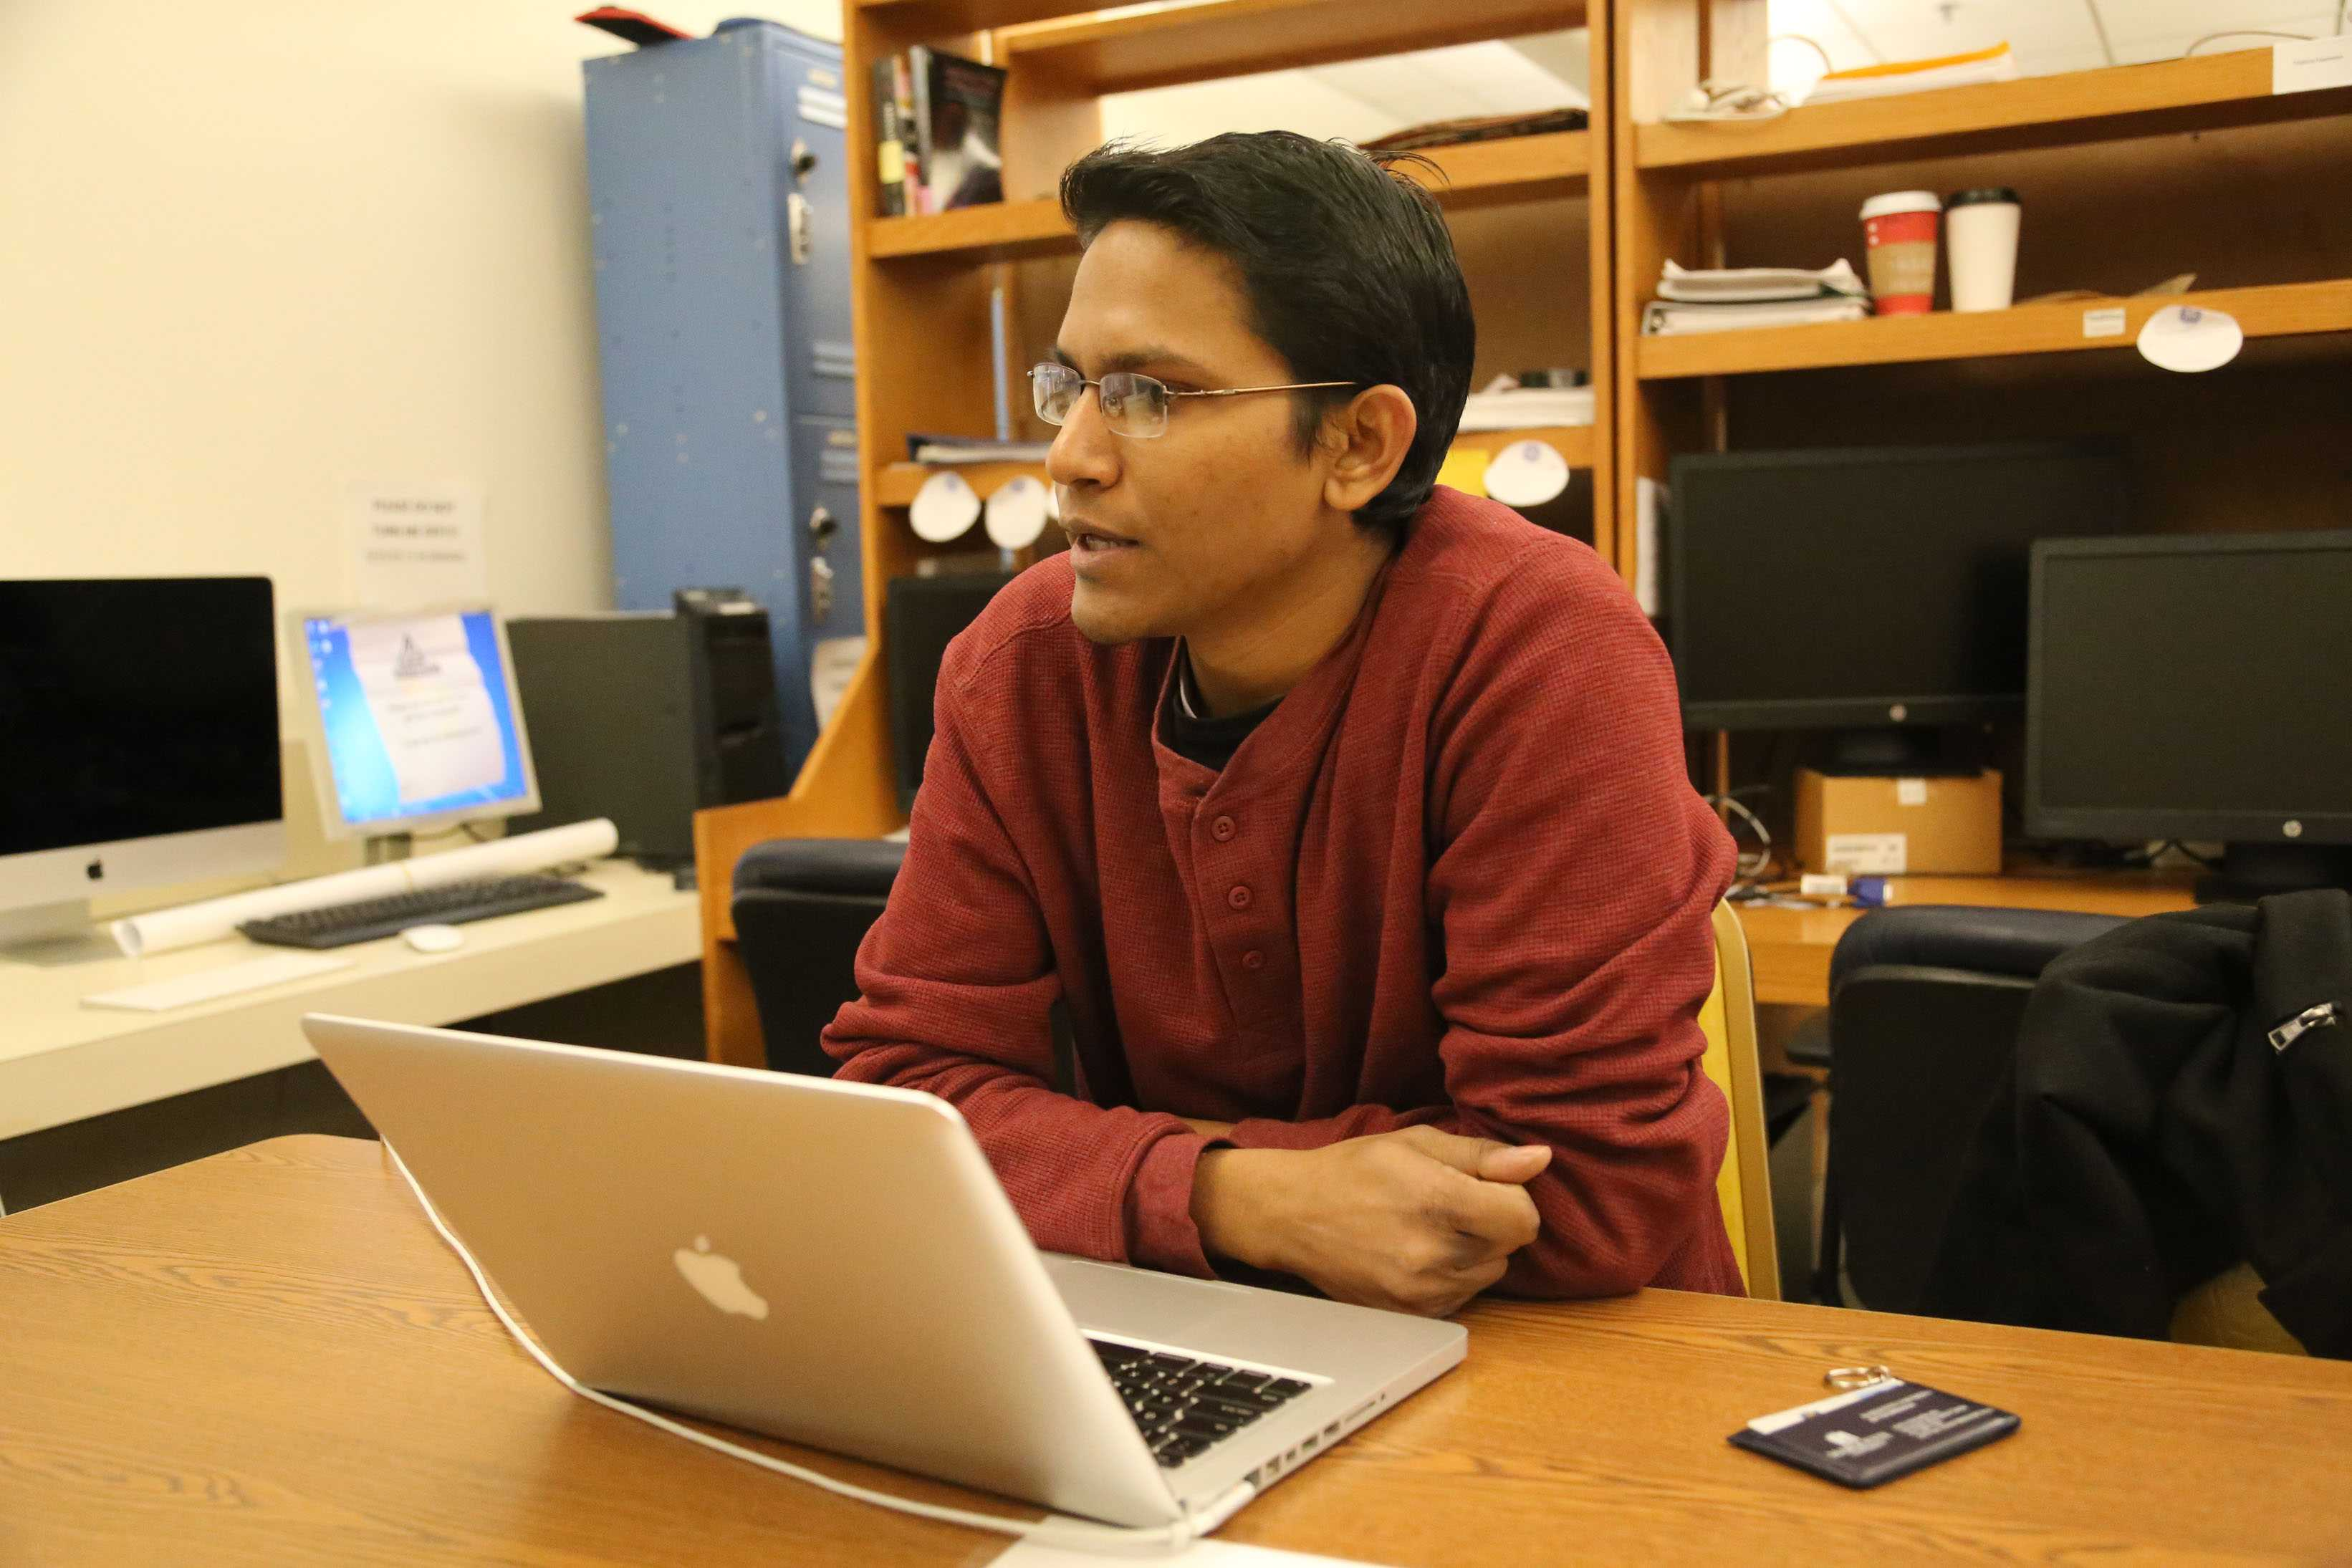 Graduate student Tanvir Roushan discusses the app he is helping to develop.